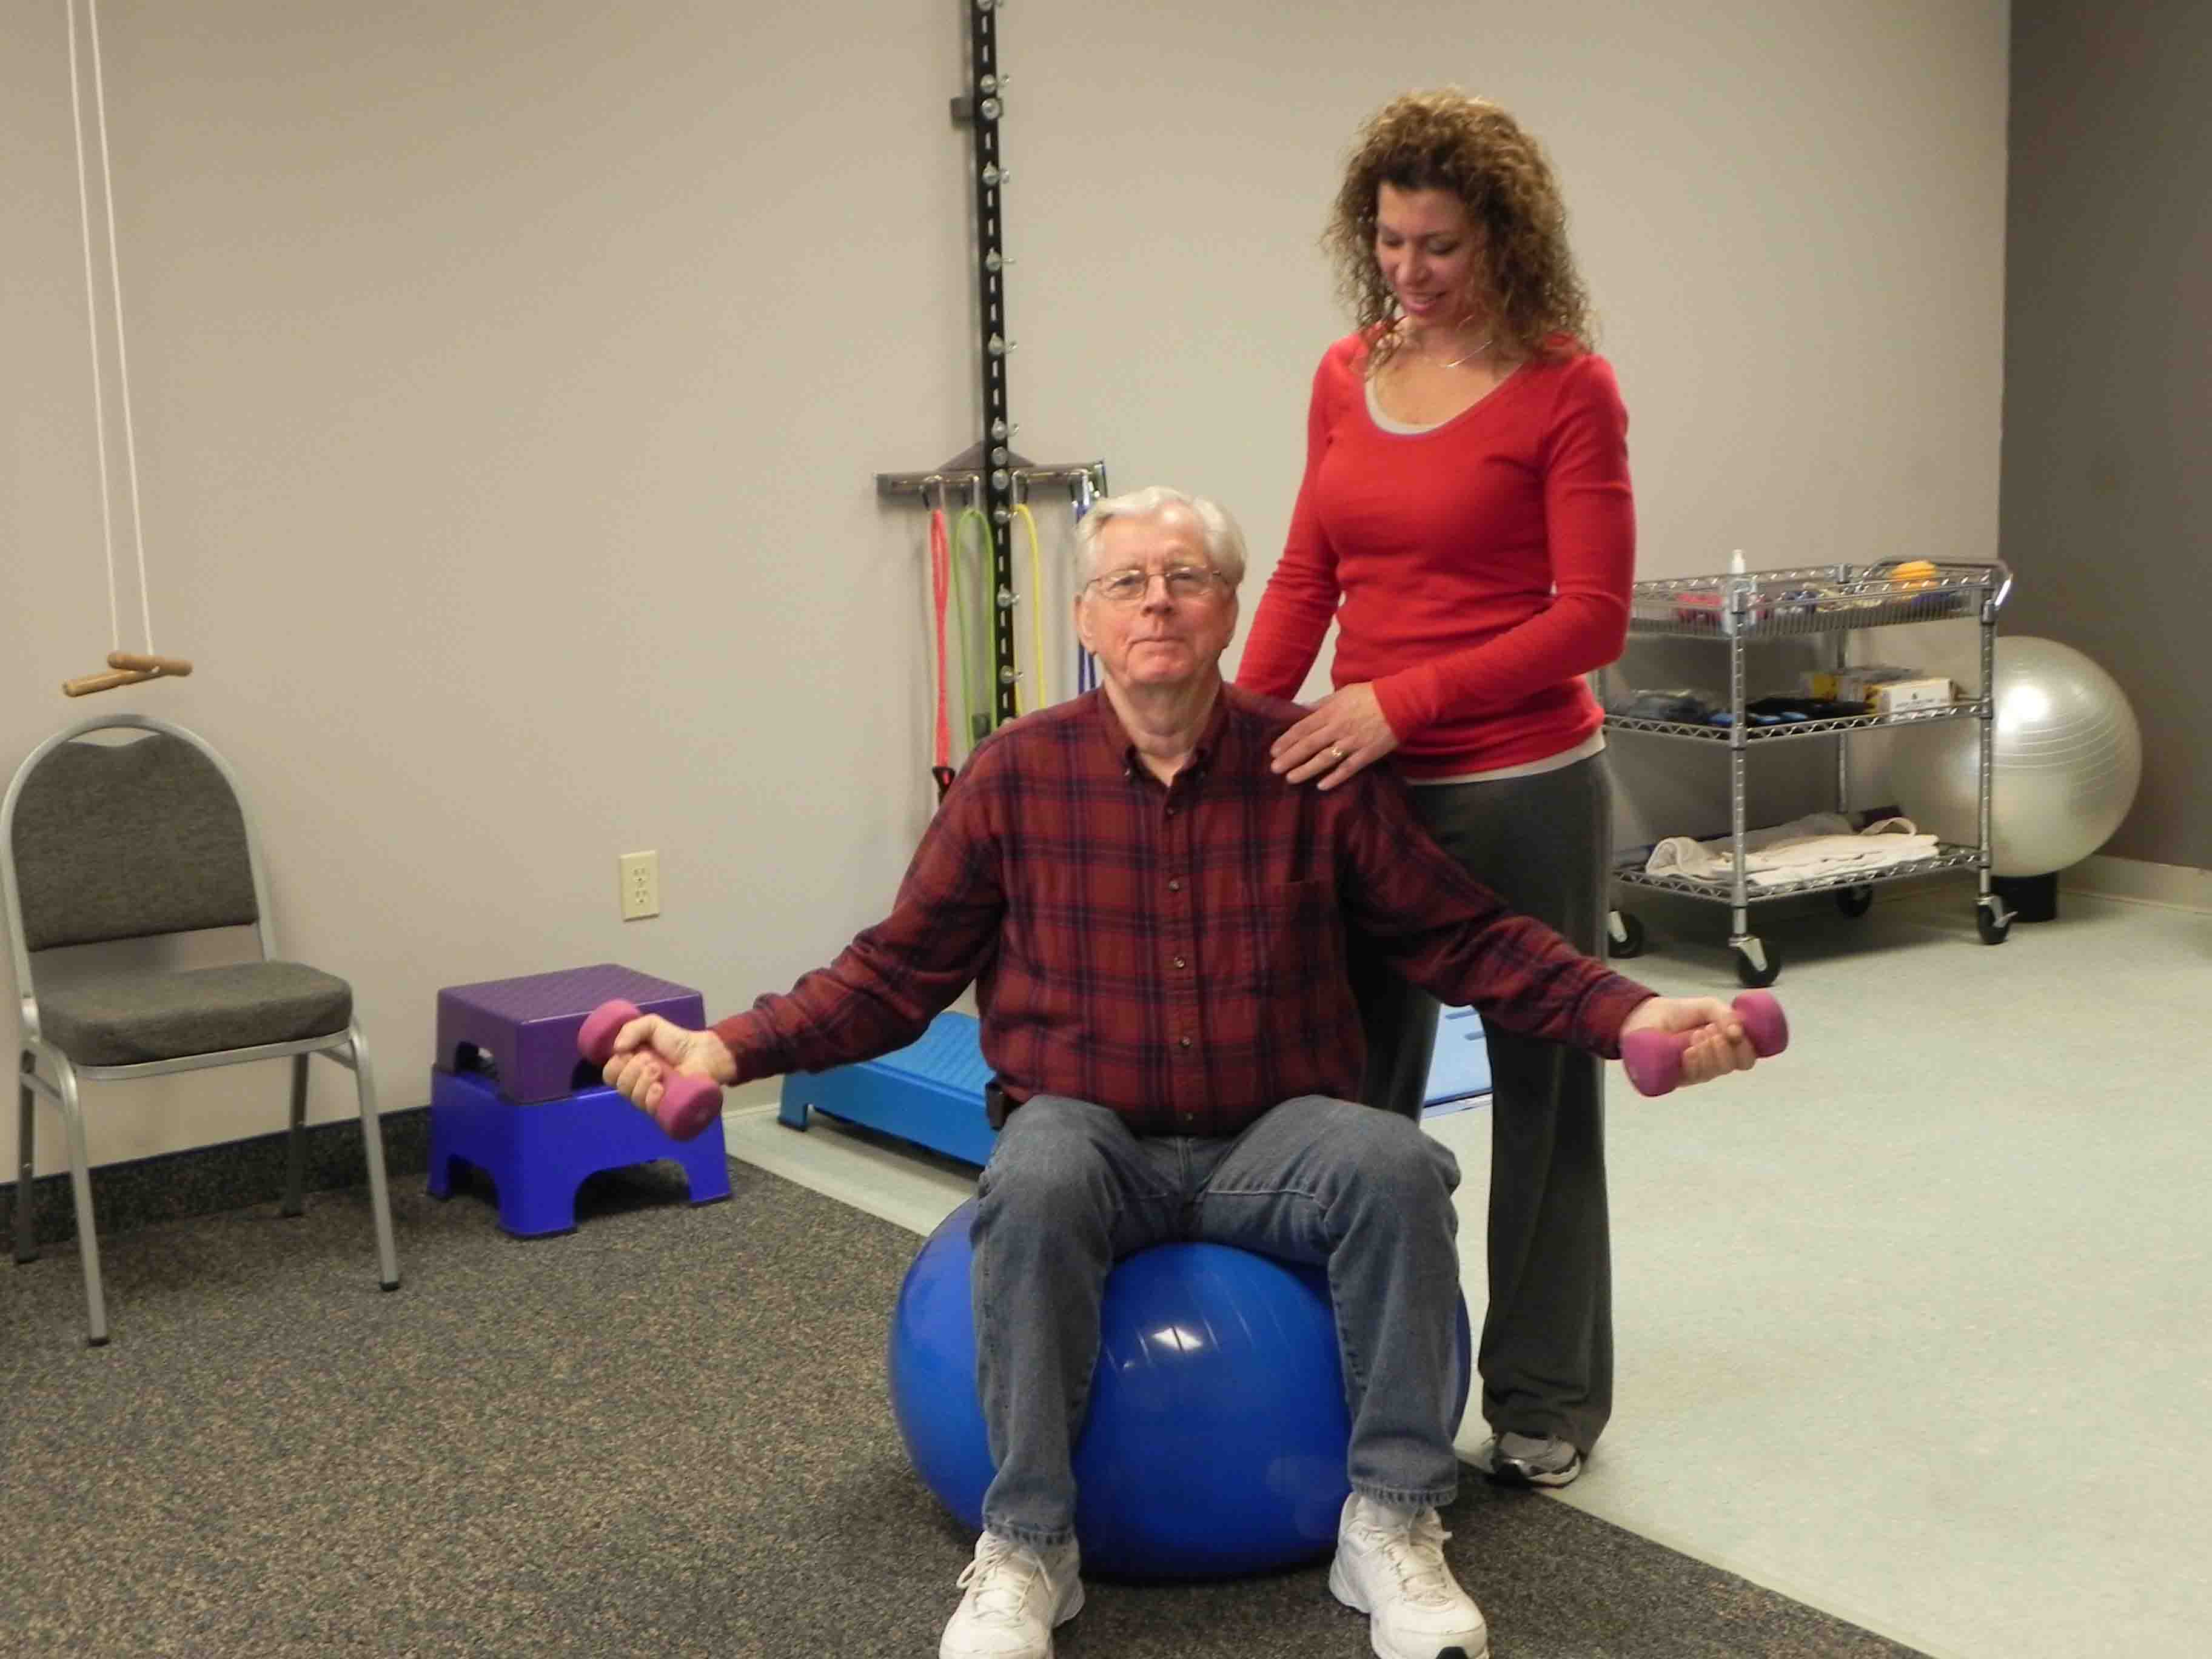 Senior with Physical therapist sitting on a exercise ball